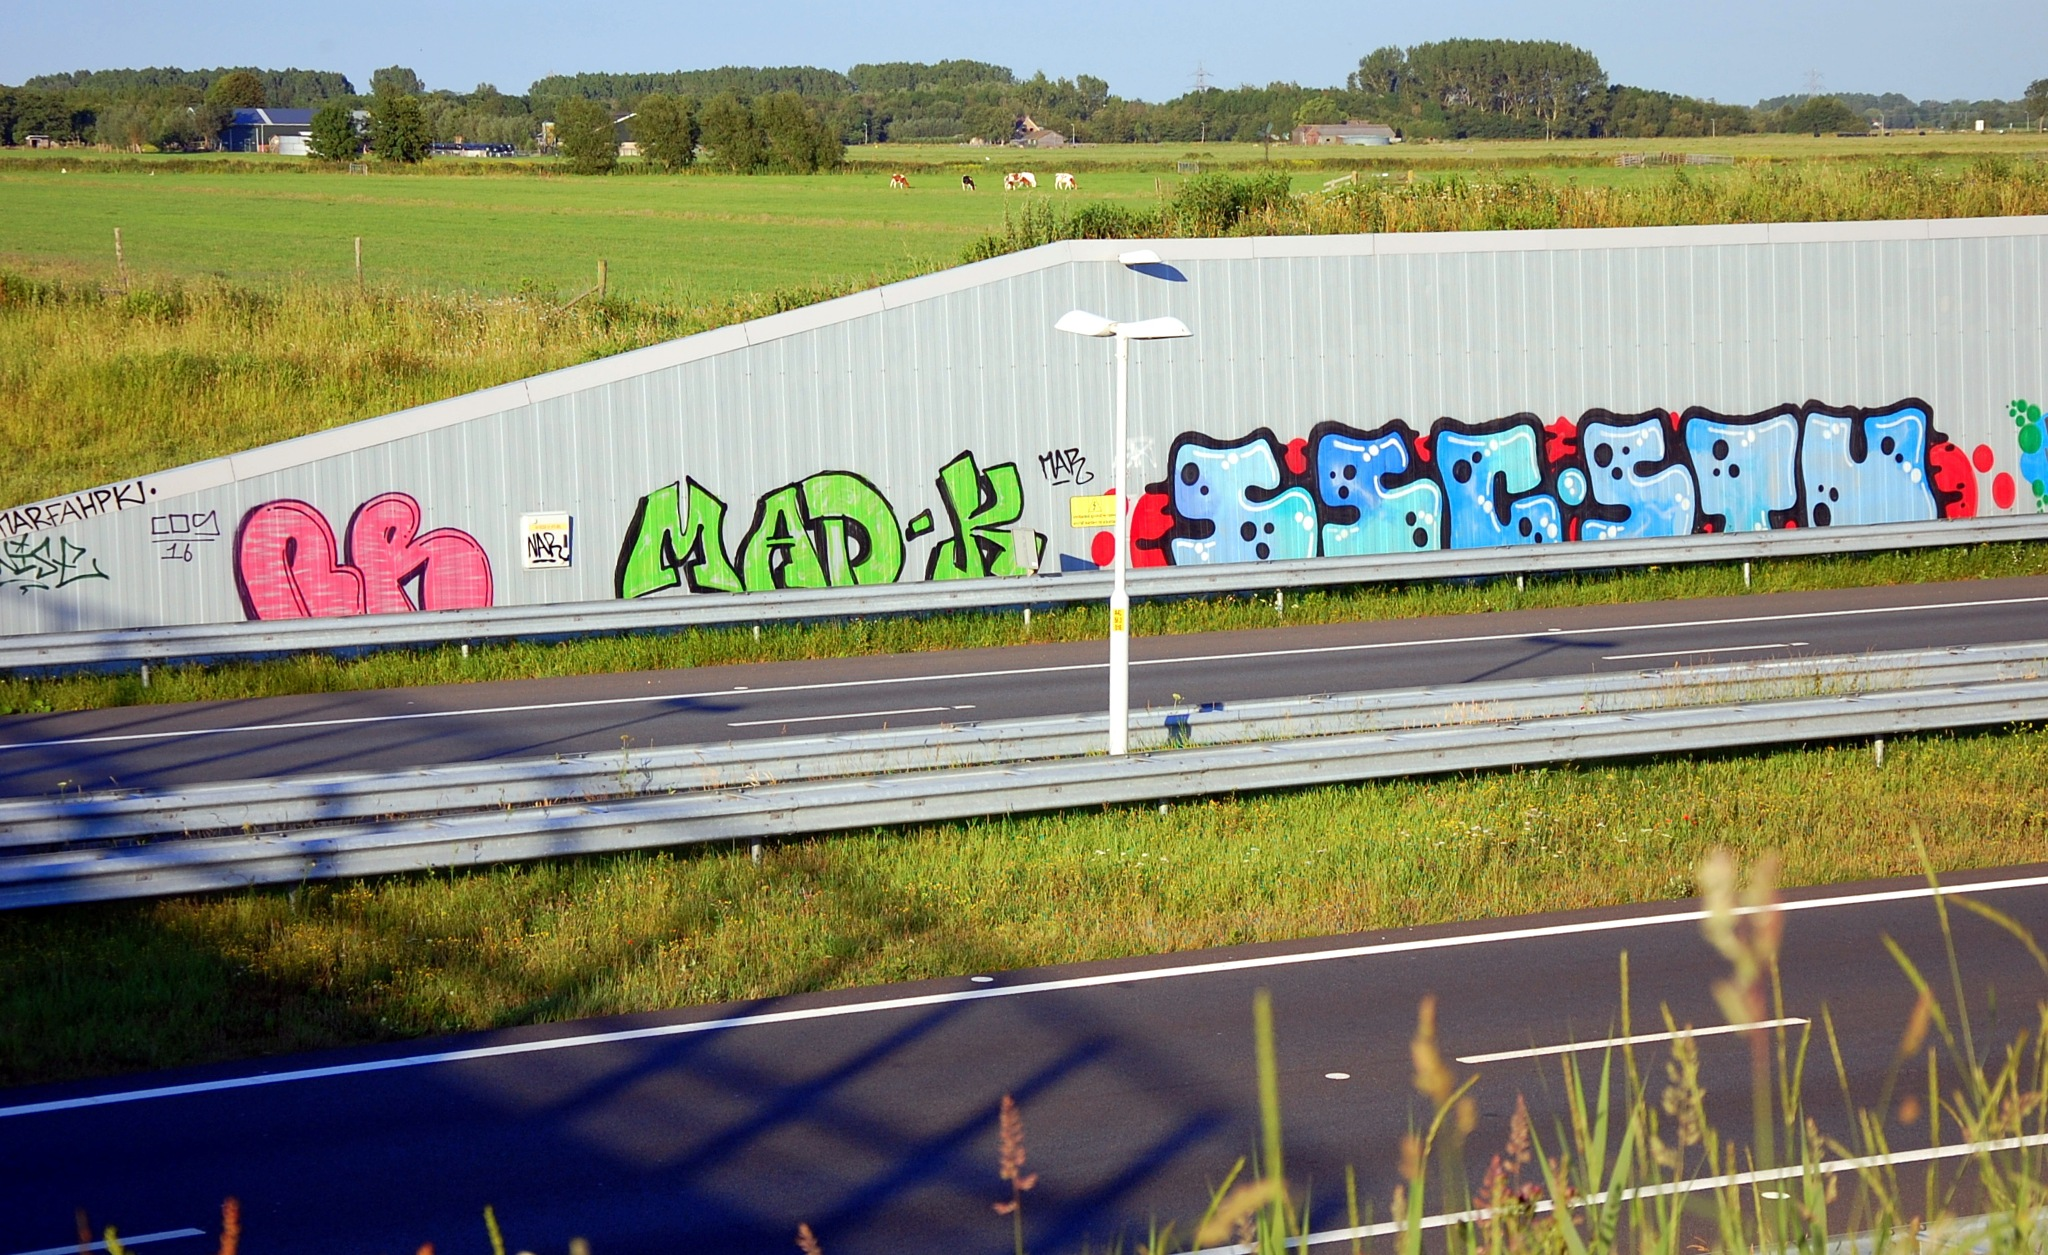 Graffiti And Grazing Cows by goga.dt